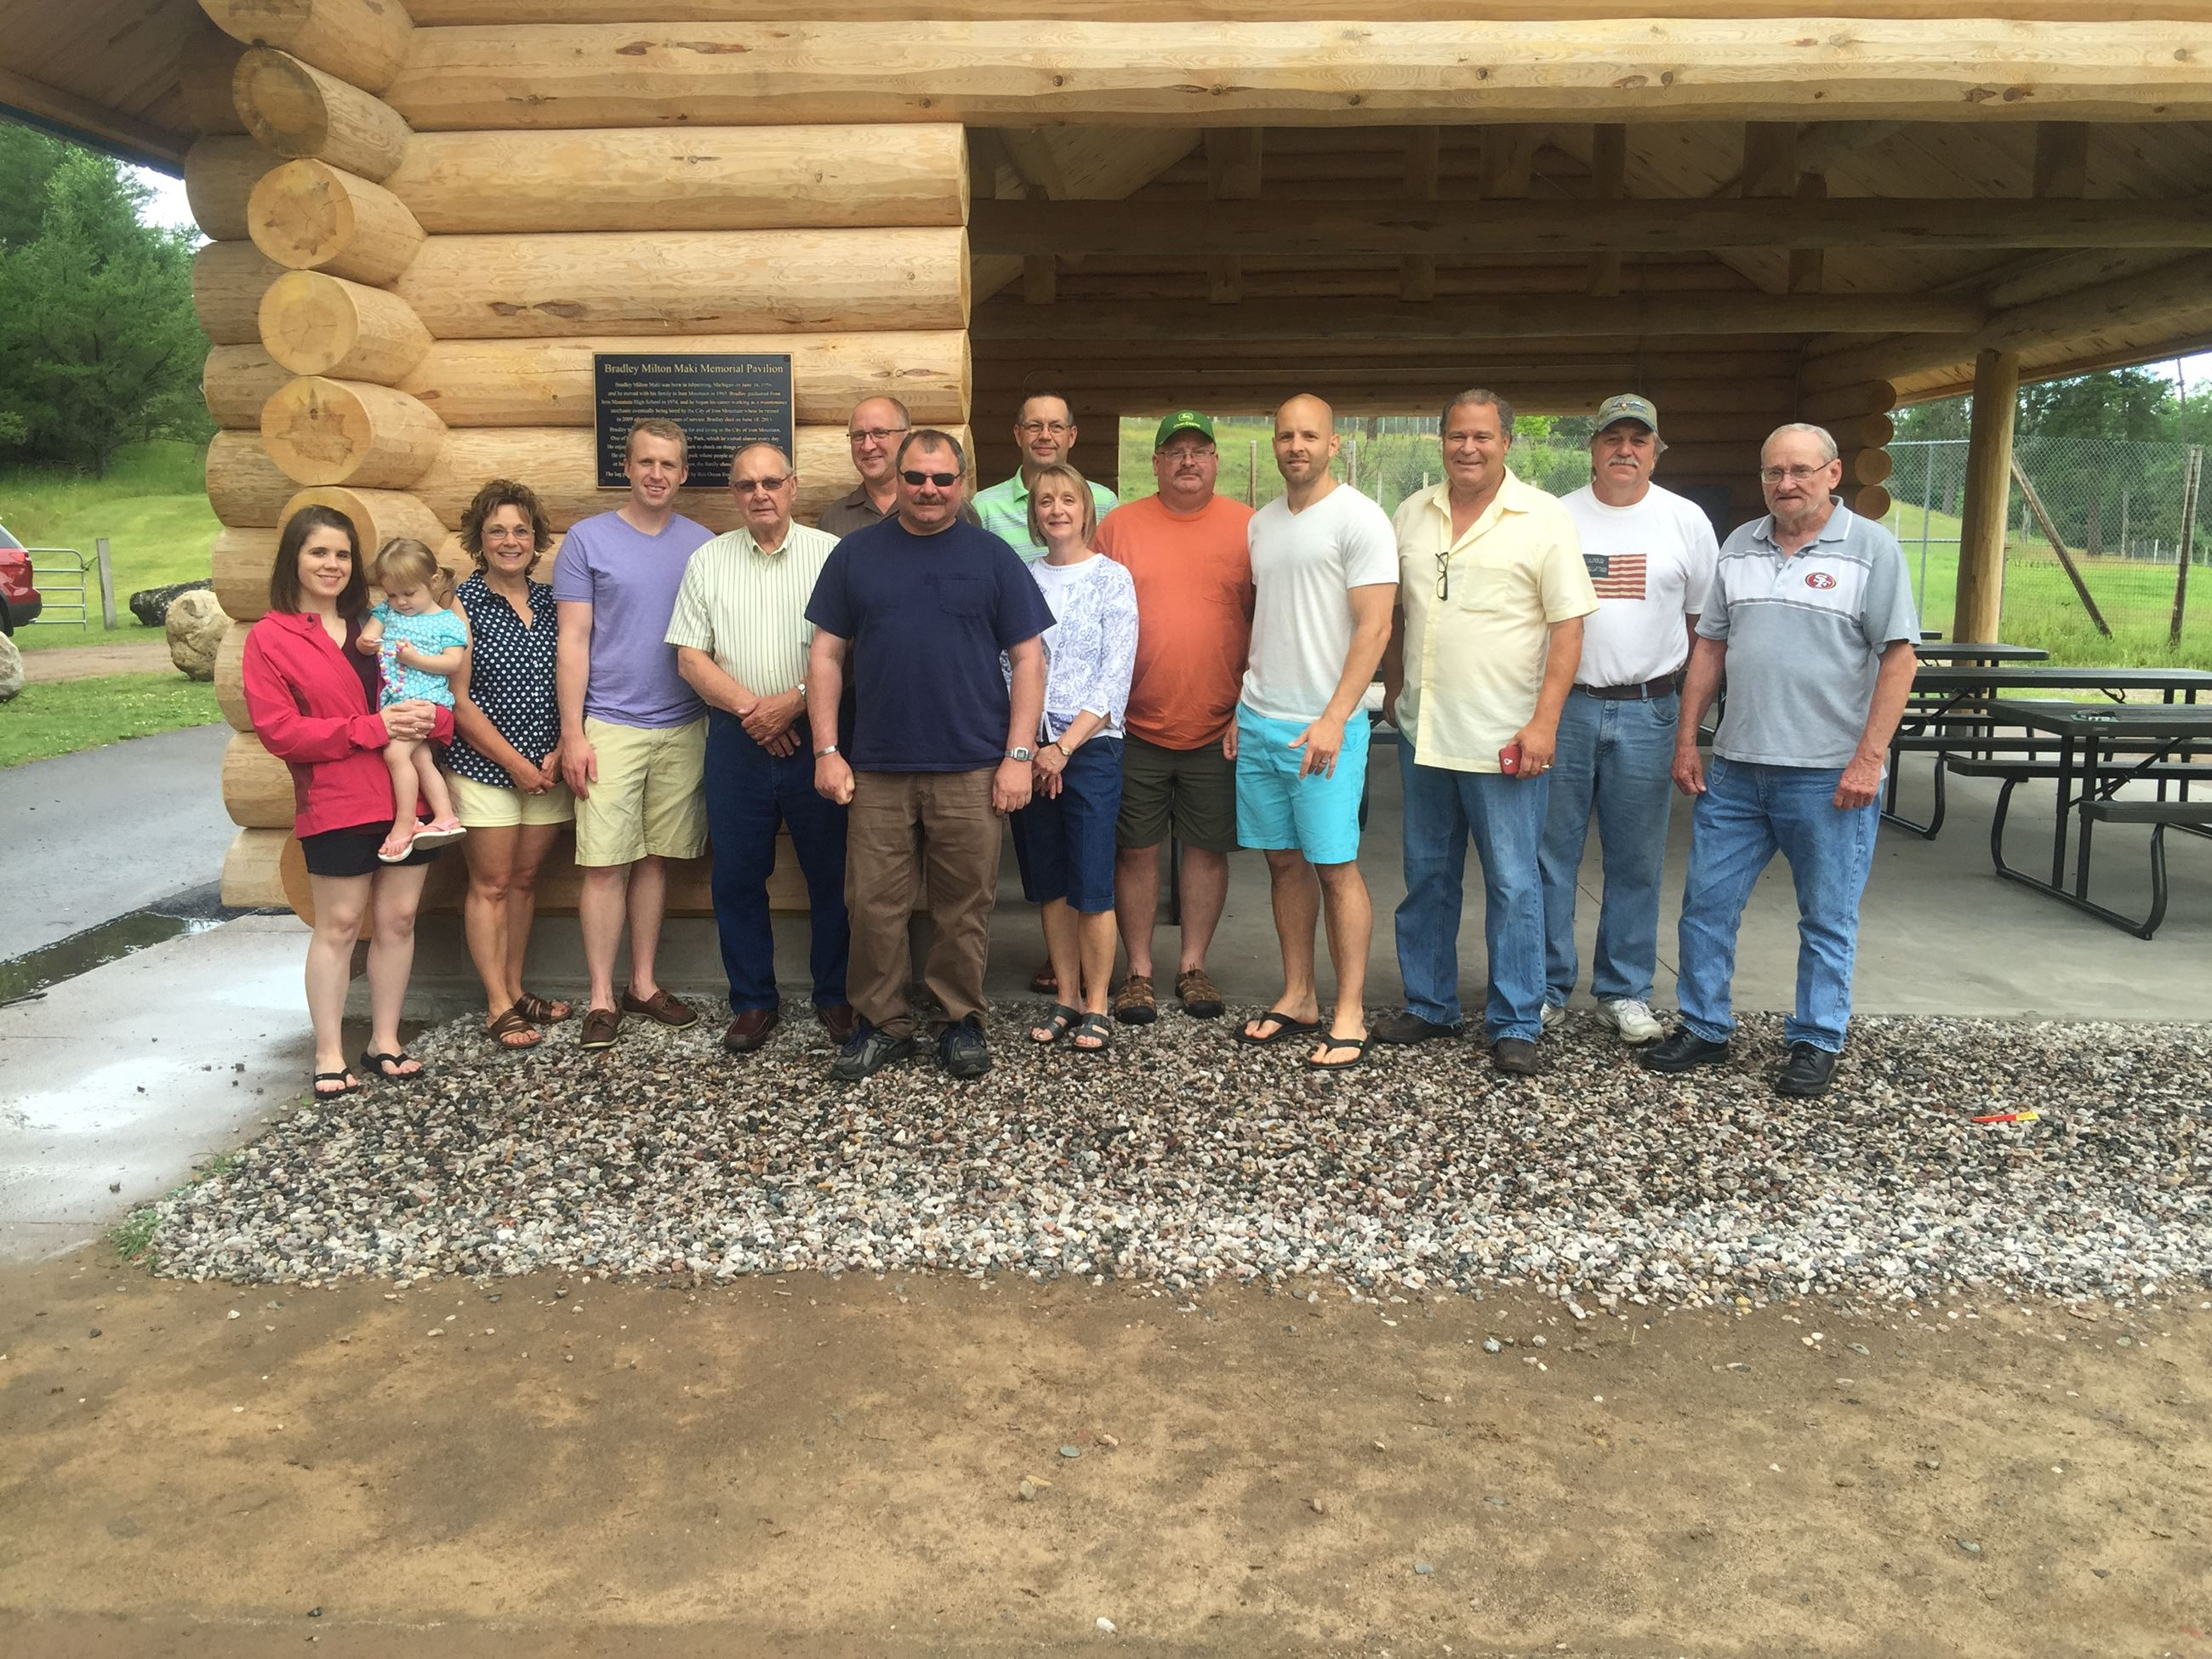 Group of people at pavillion dedication July 18 2015